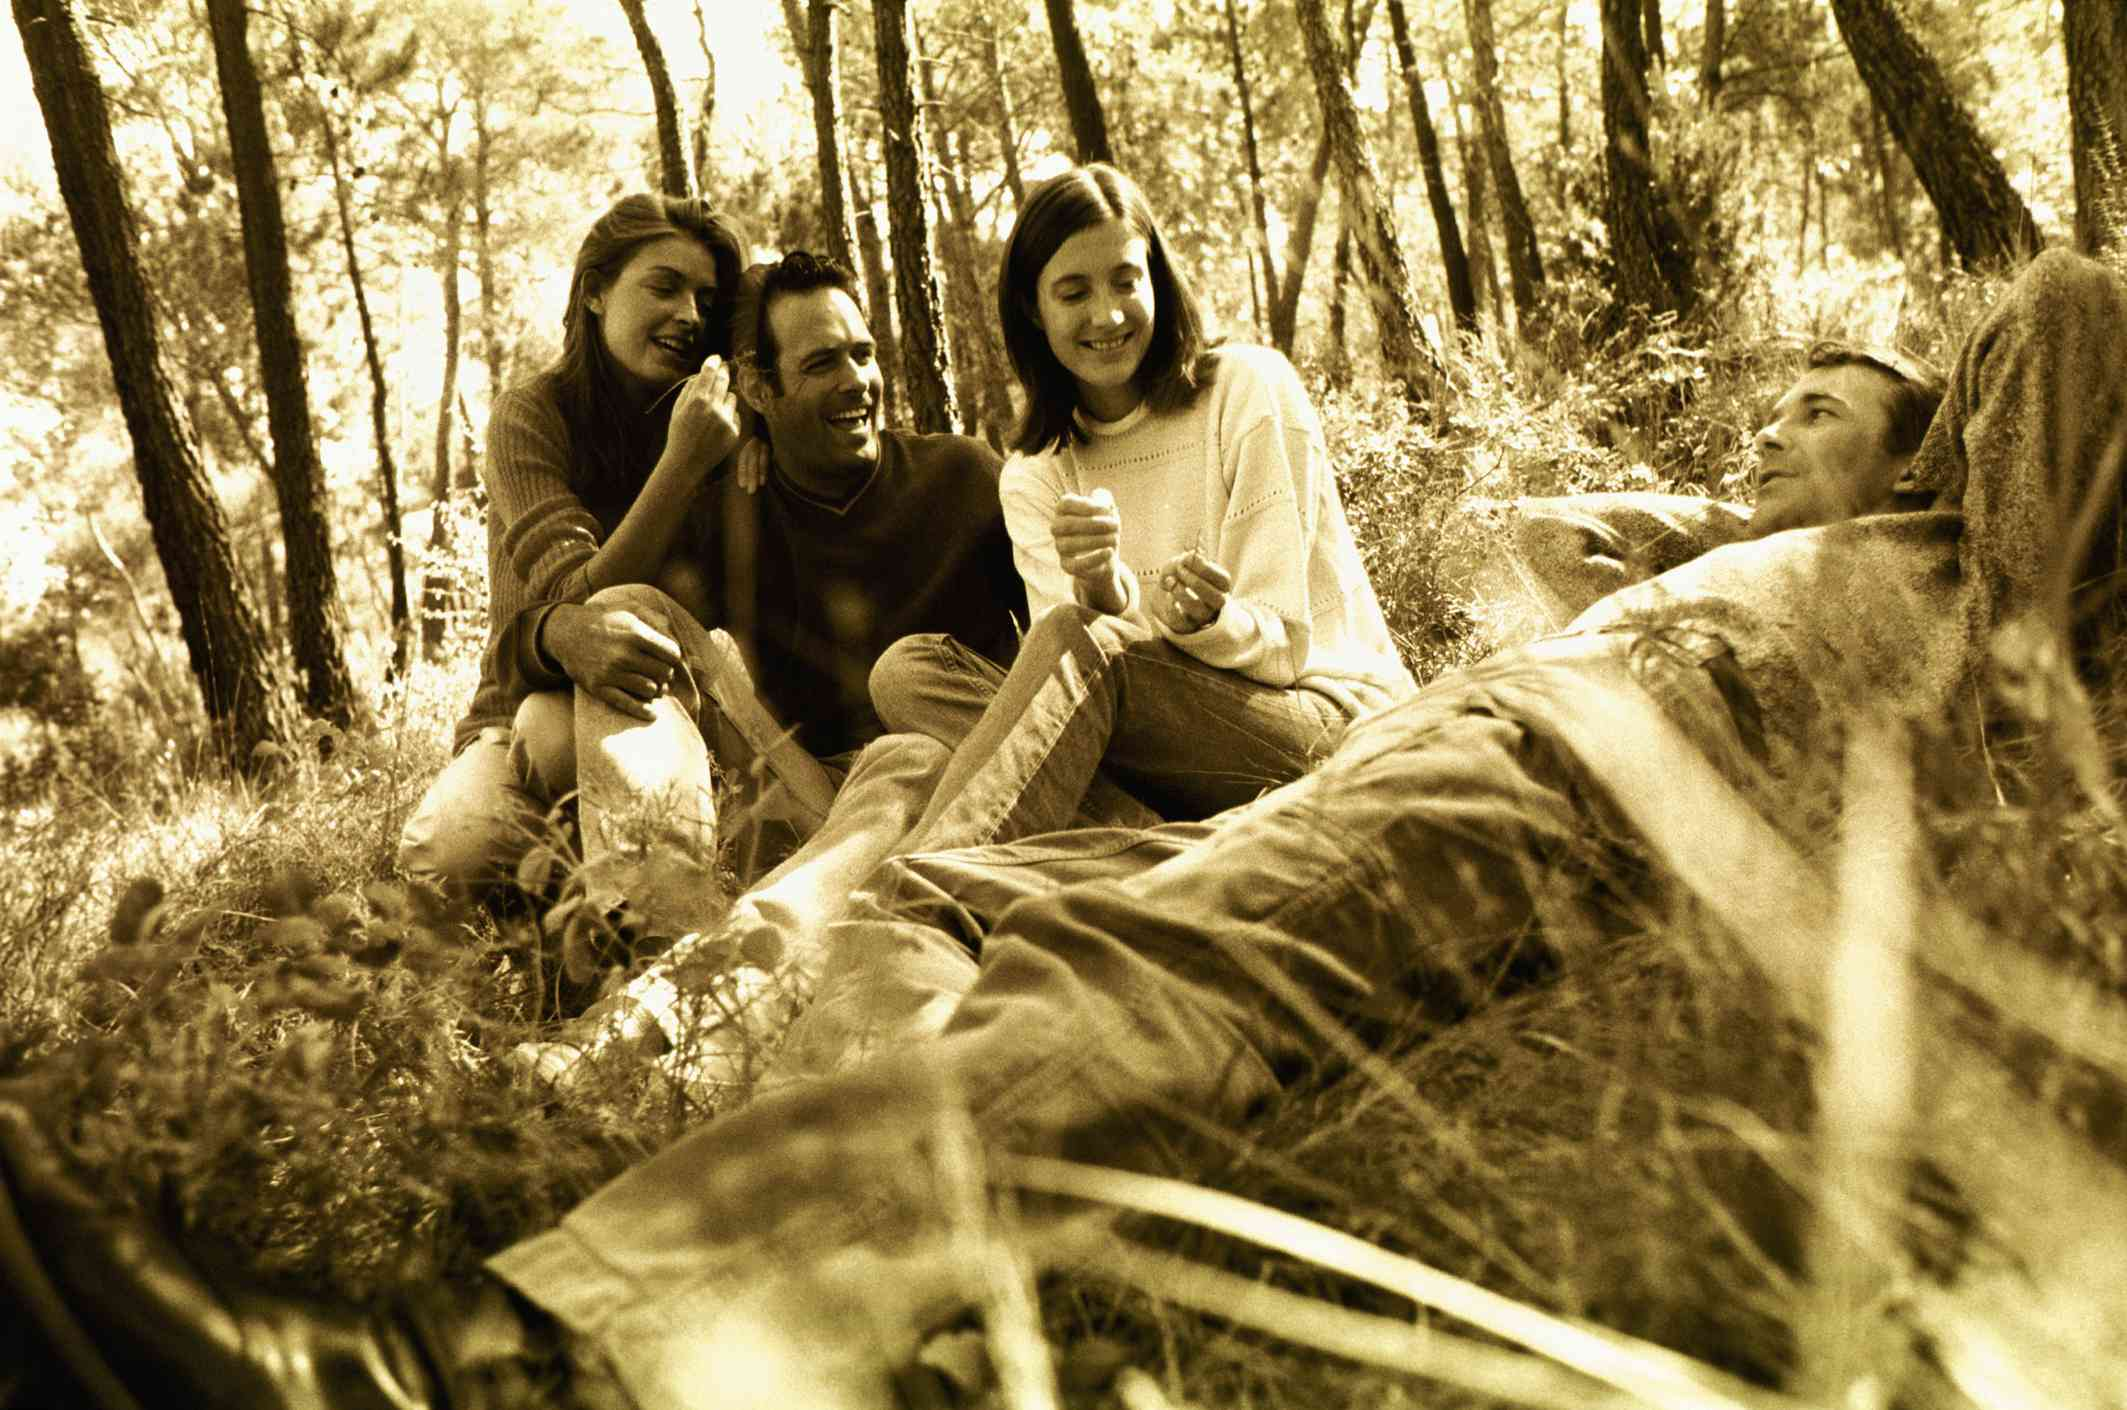 A yellow monochrome image of a group of friends sitting in the woods together.